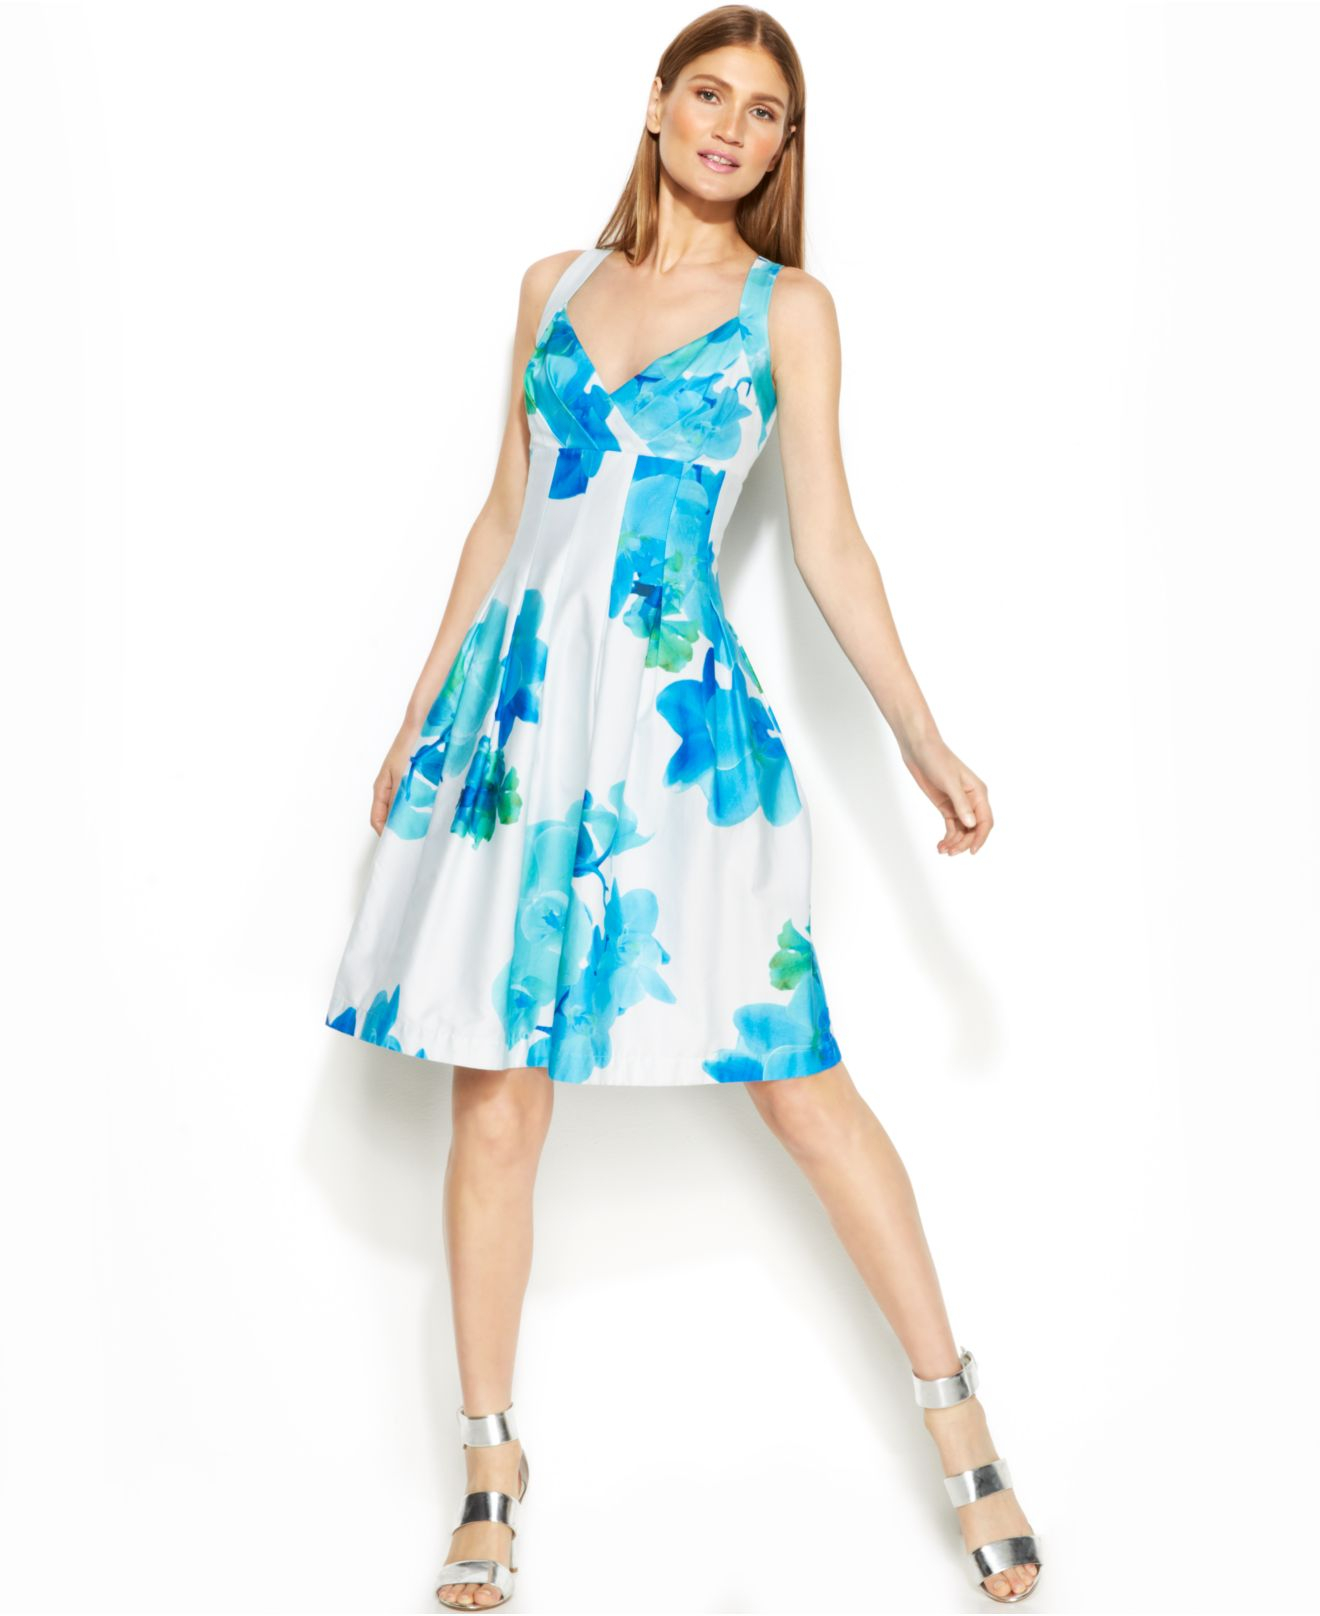 Lyst - Calvin Klein Floral-Print Pleated Dress in Blue